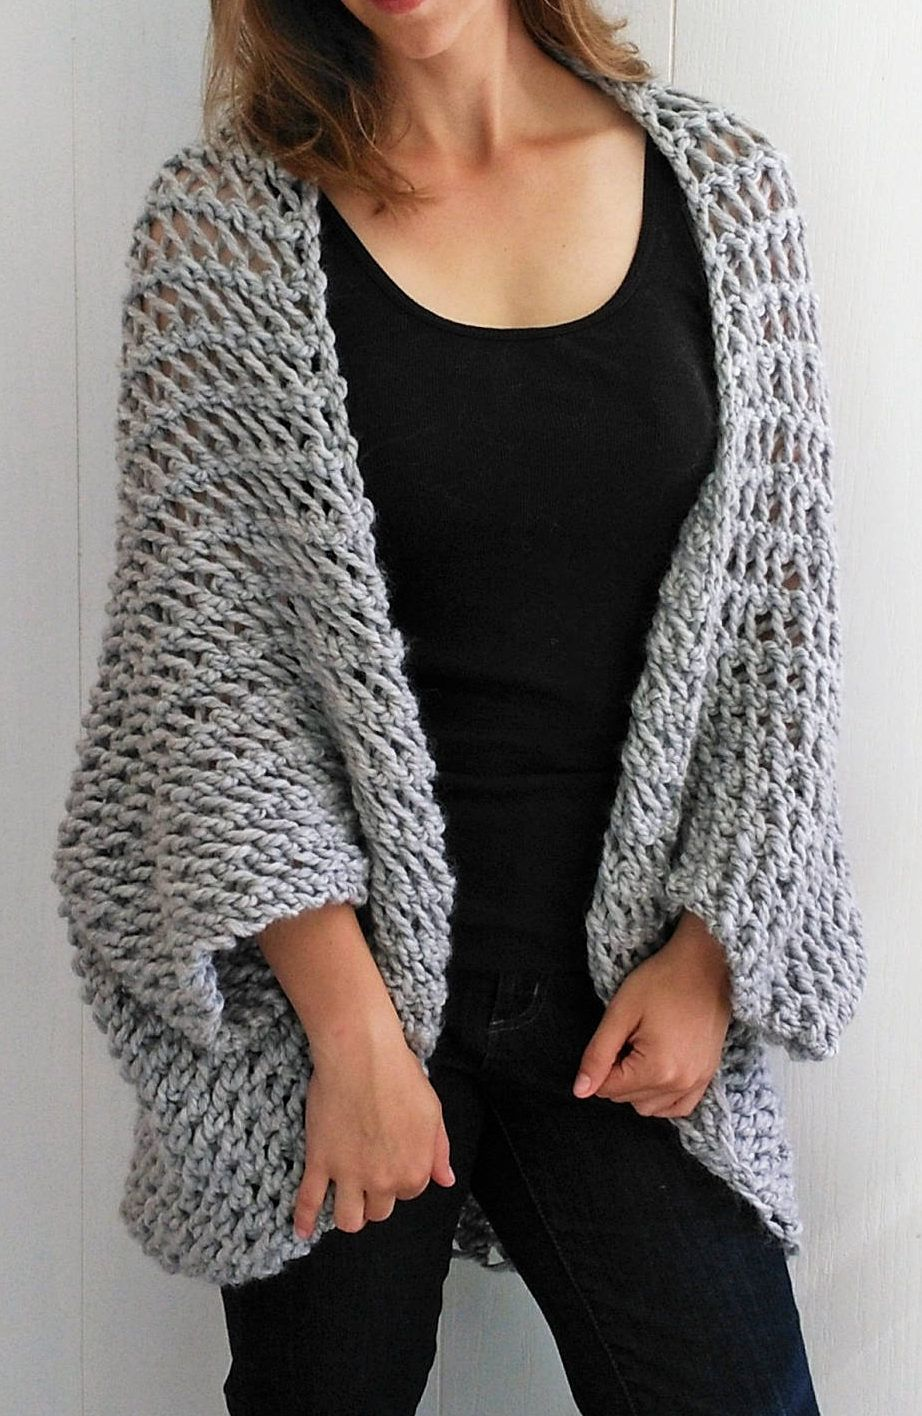 Easy Shrug Knitting Patterns | Super bulky yarn, Easy patterns and ...